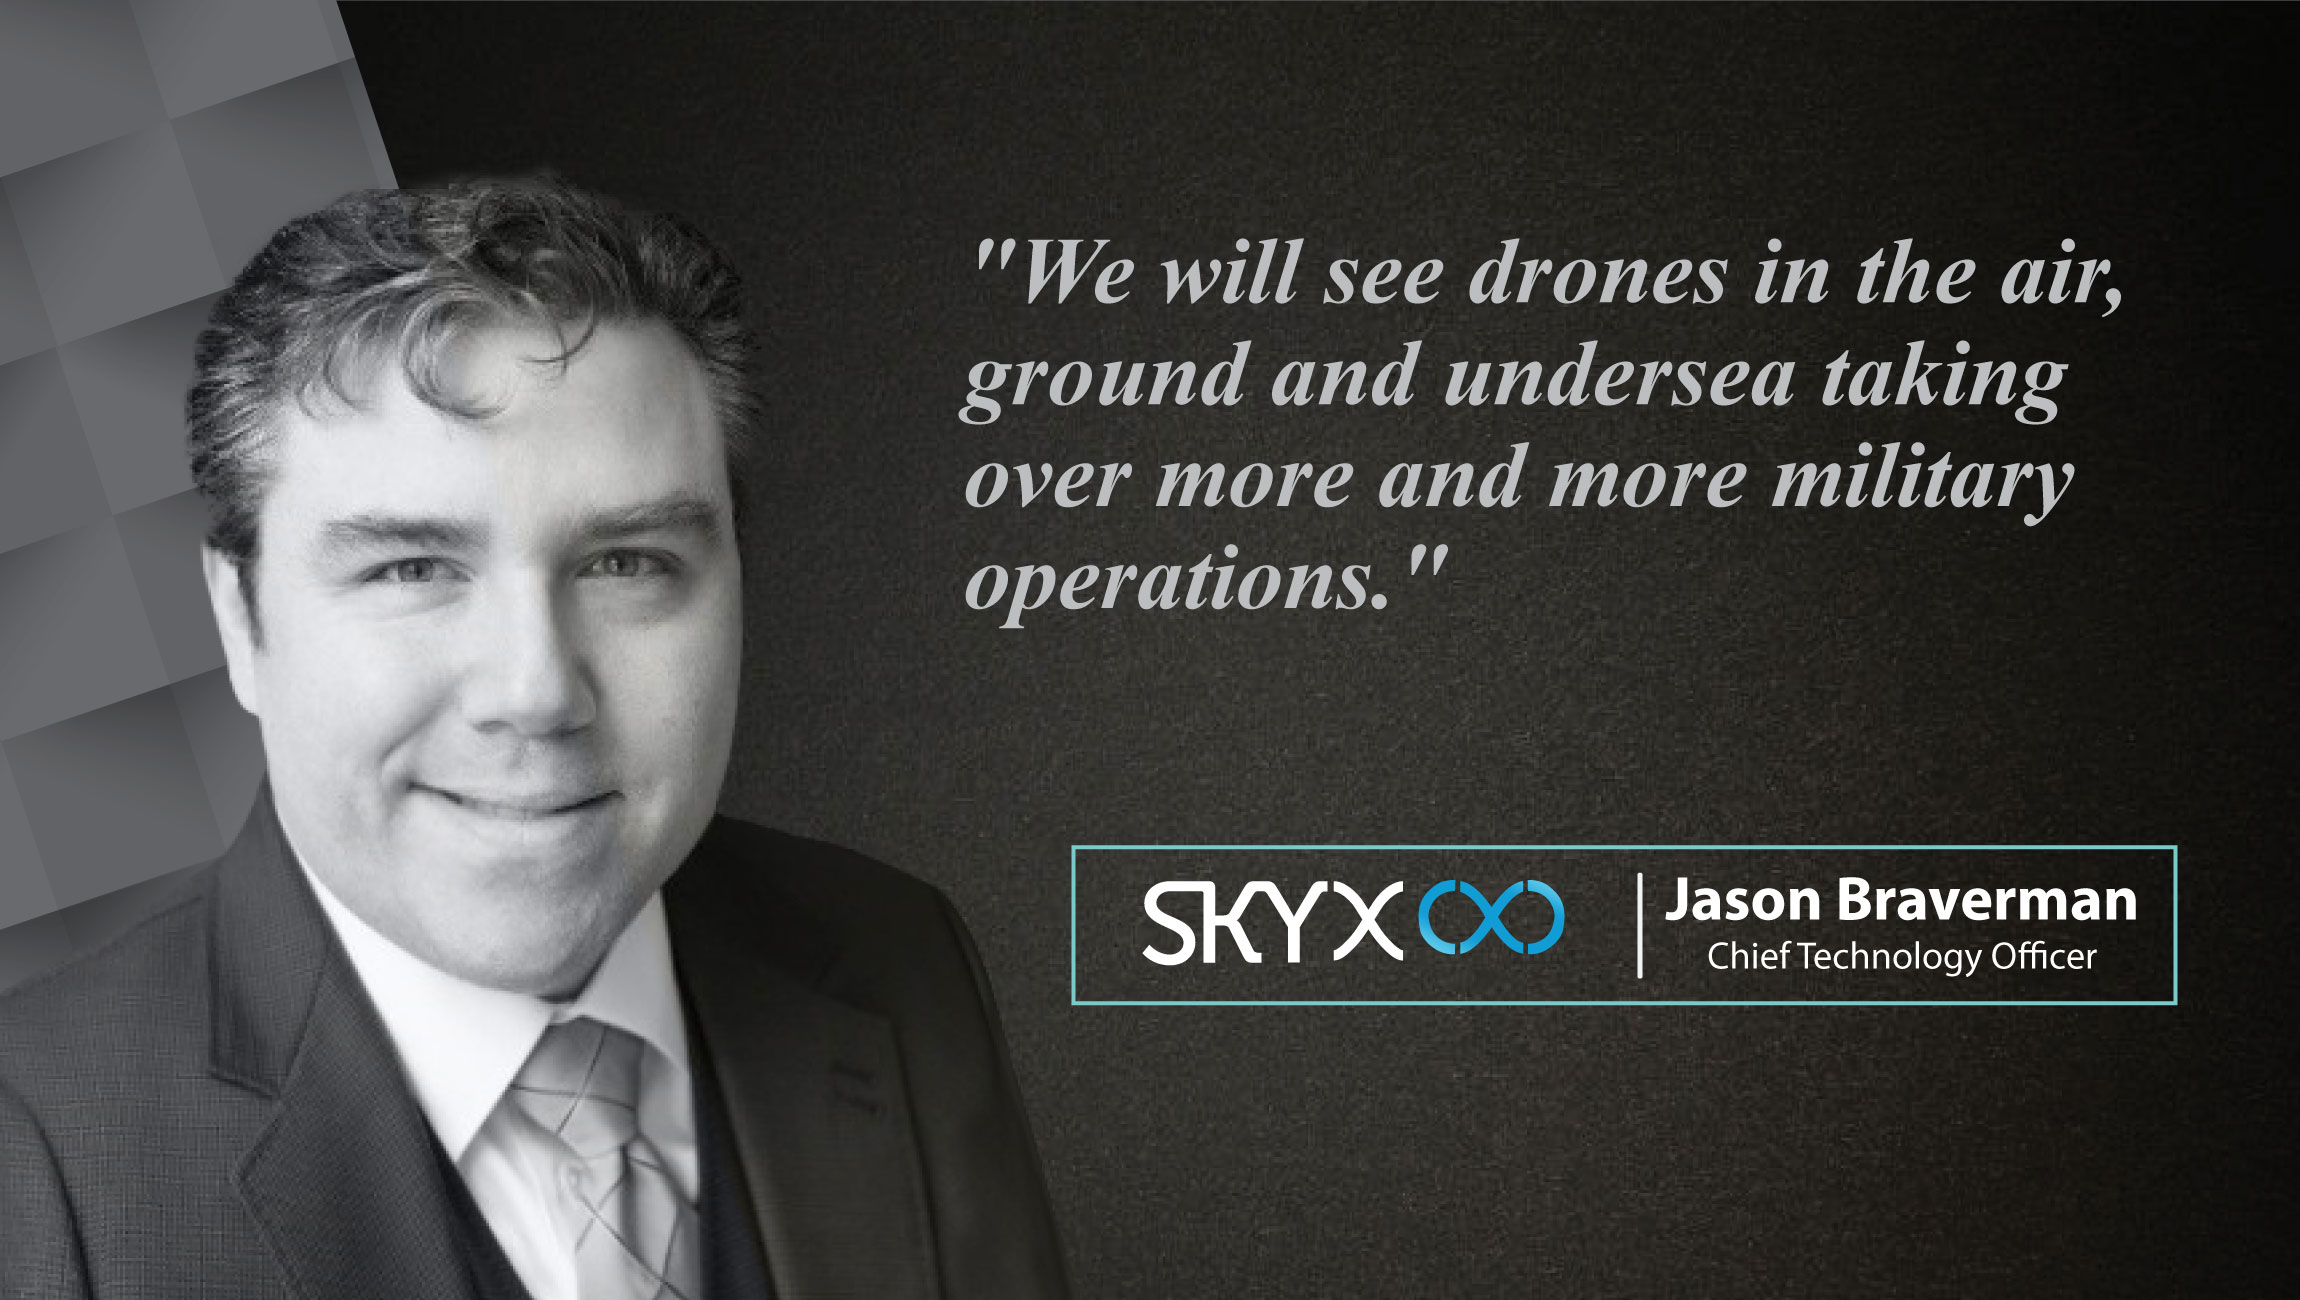 AiThority Interview with Jason Braverman, Chief Technology Officer at SkyX Systems Corp.